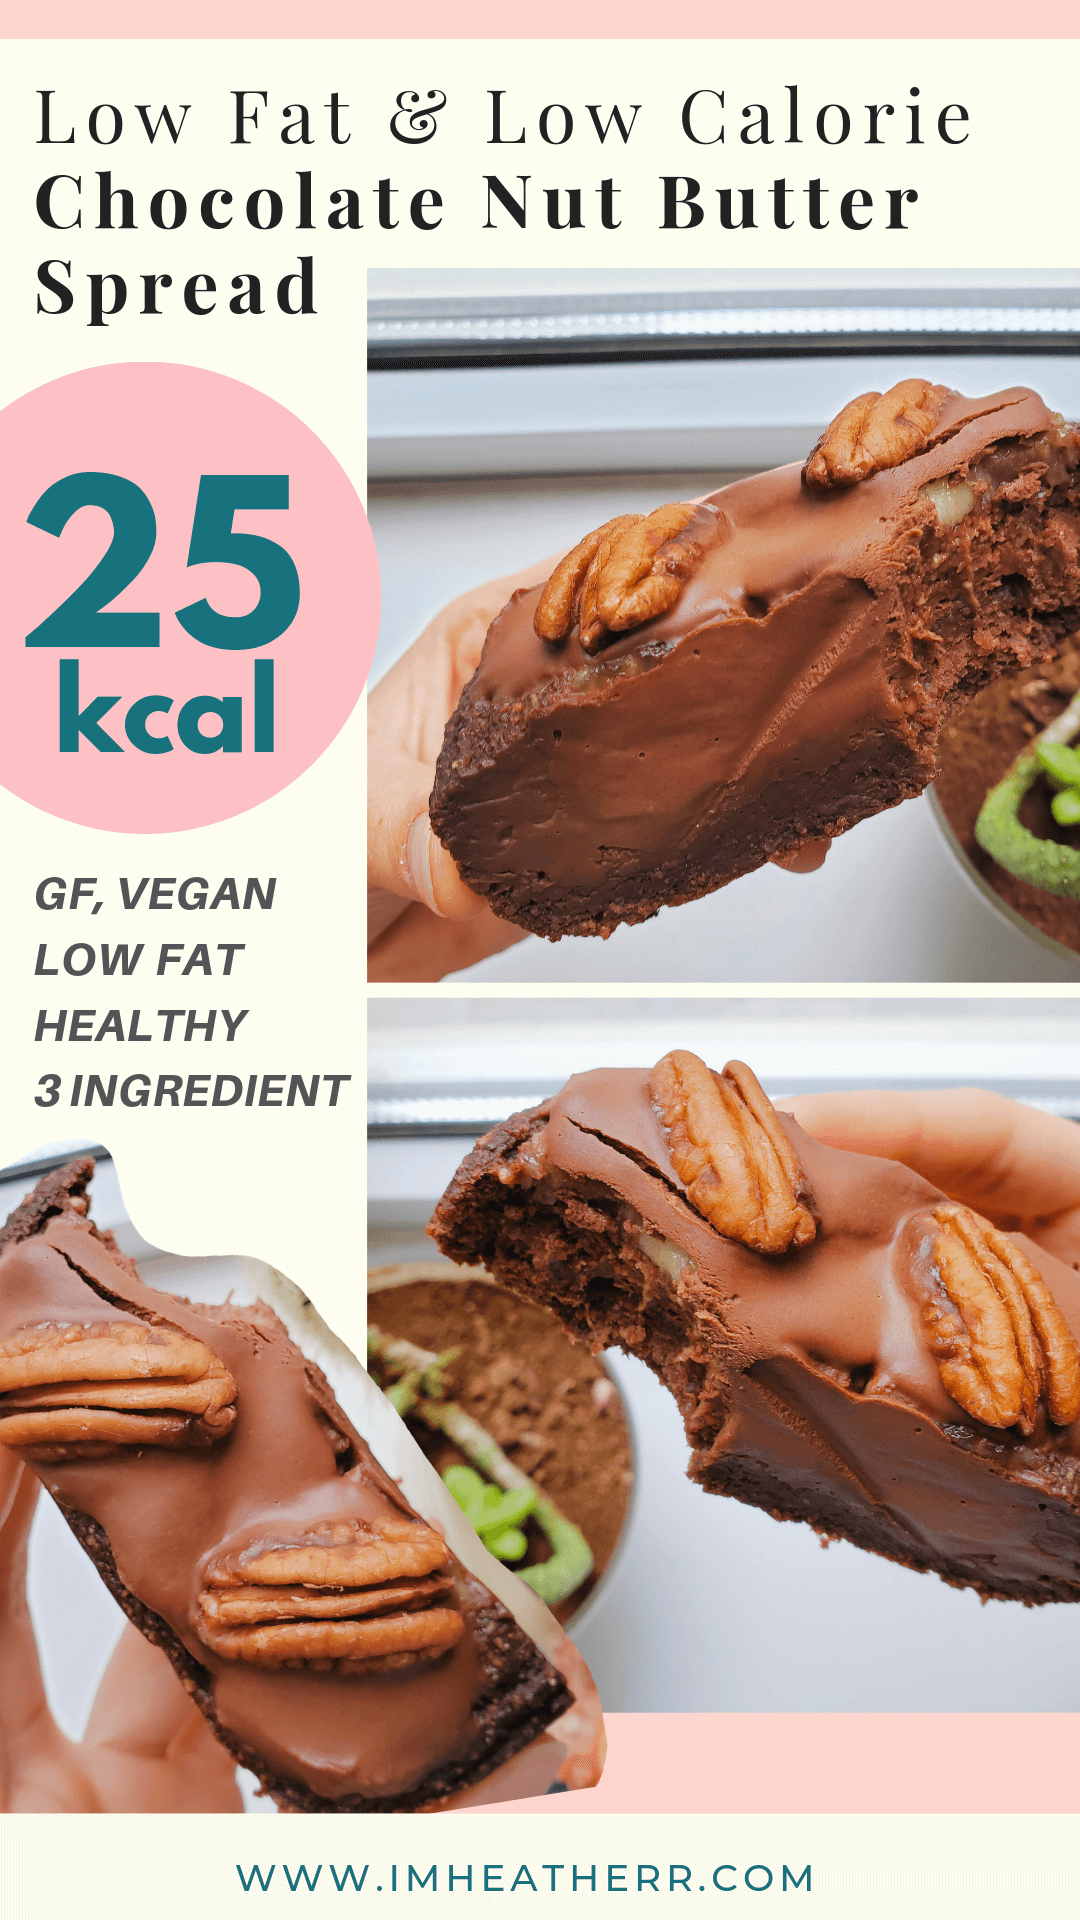 Secretly Low Calorie Pb2 Chocolate Nut Butter 3 Ingredients 30 Calories Imheatherr